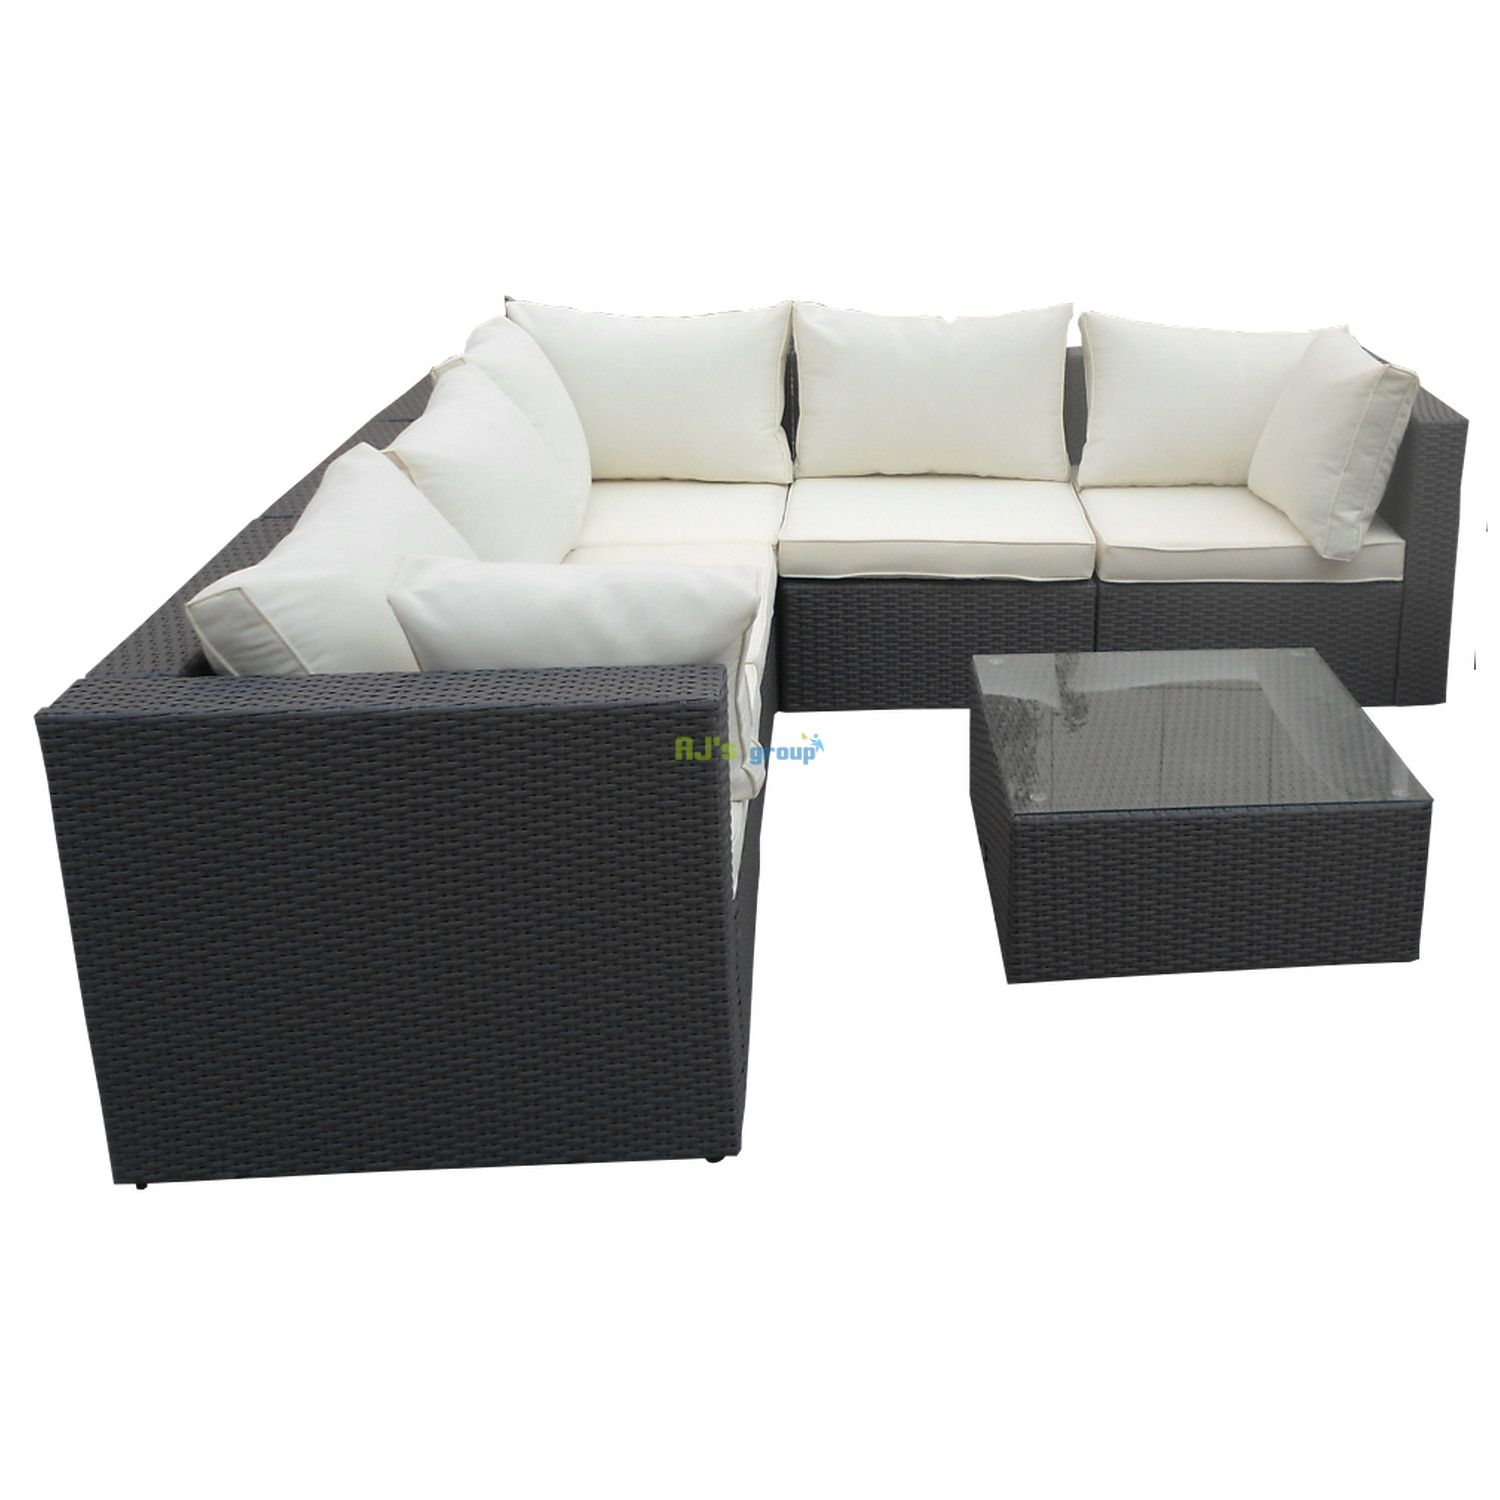 Gartenmobel New Jersey : Rattan Wicker Garden Patio Set Havanna Outdoor Lounge Furniture Couch